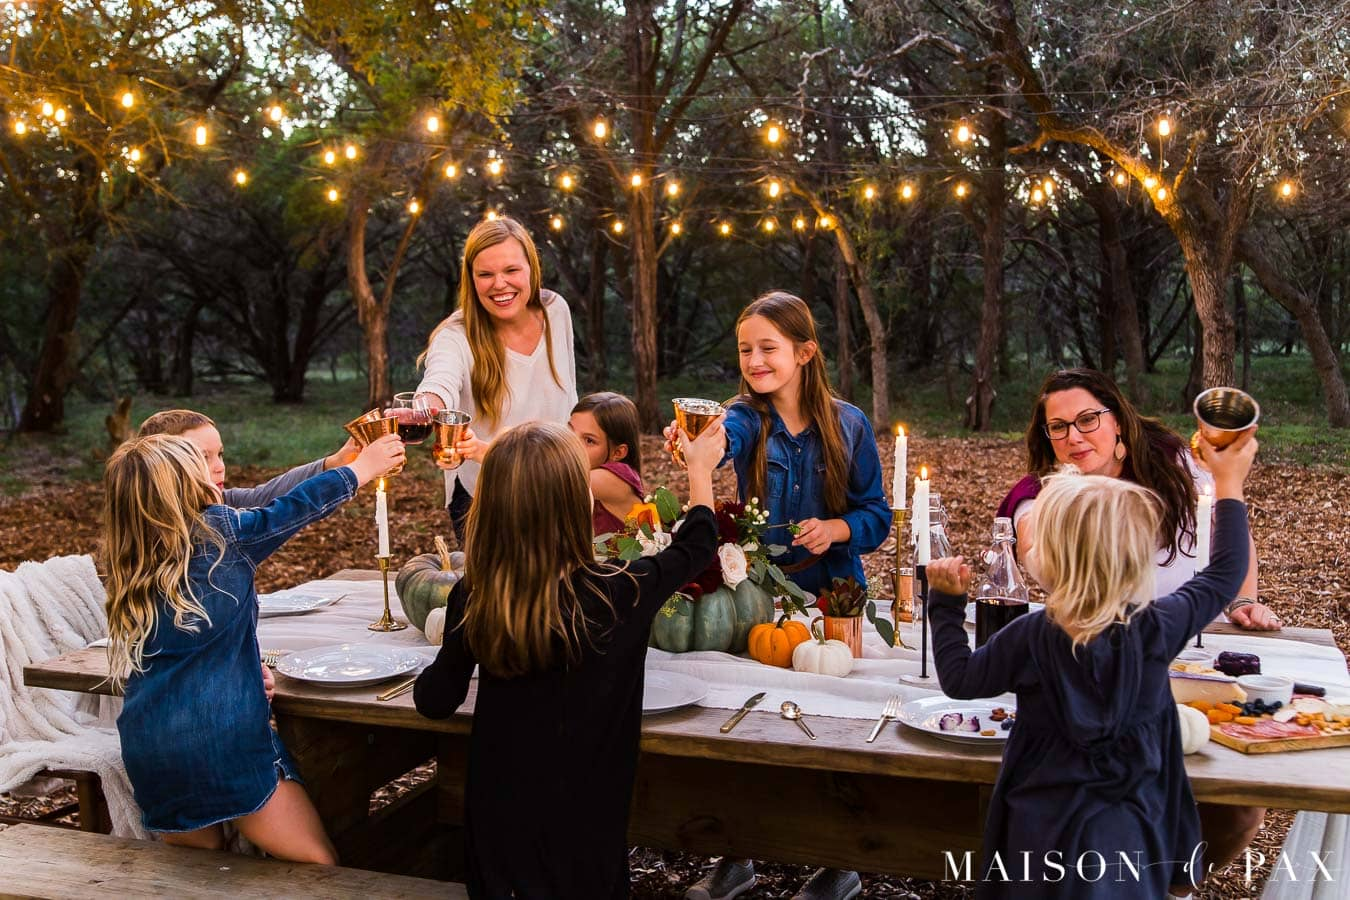 friendsgiving out in the woods with candles and string lights | Maison de Pax